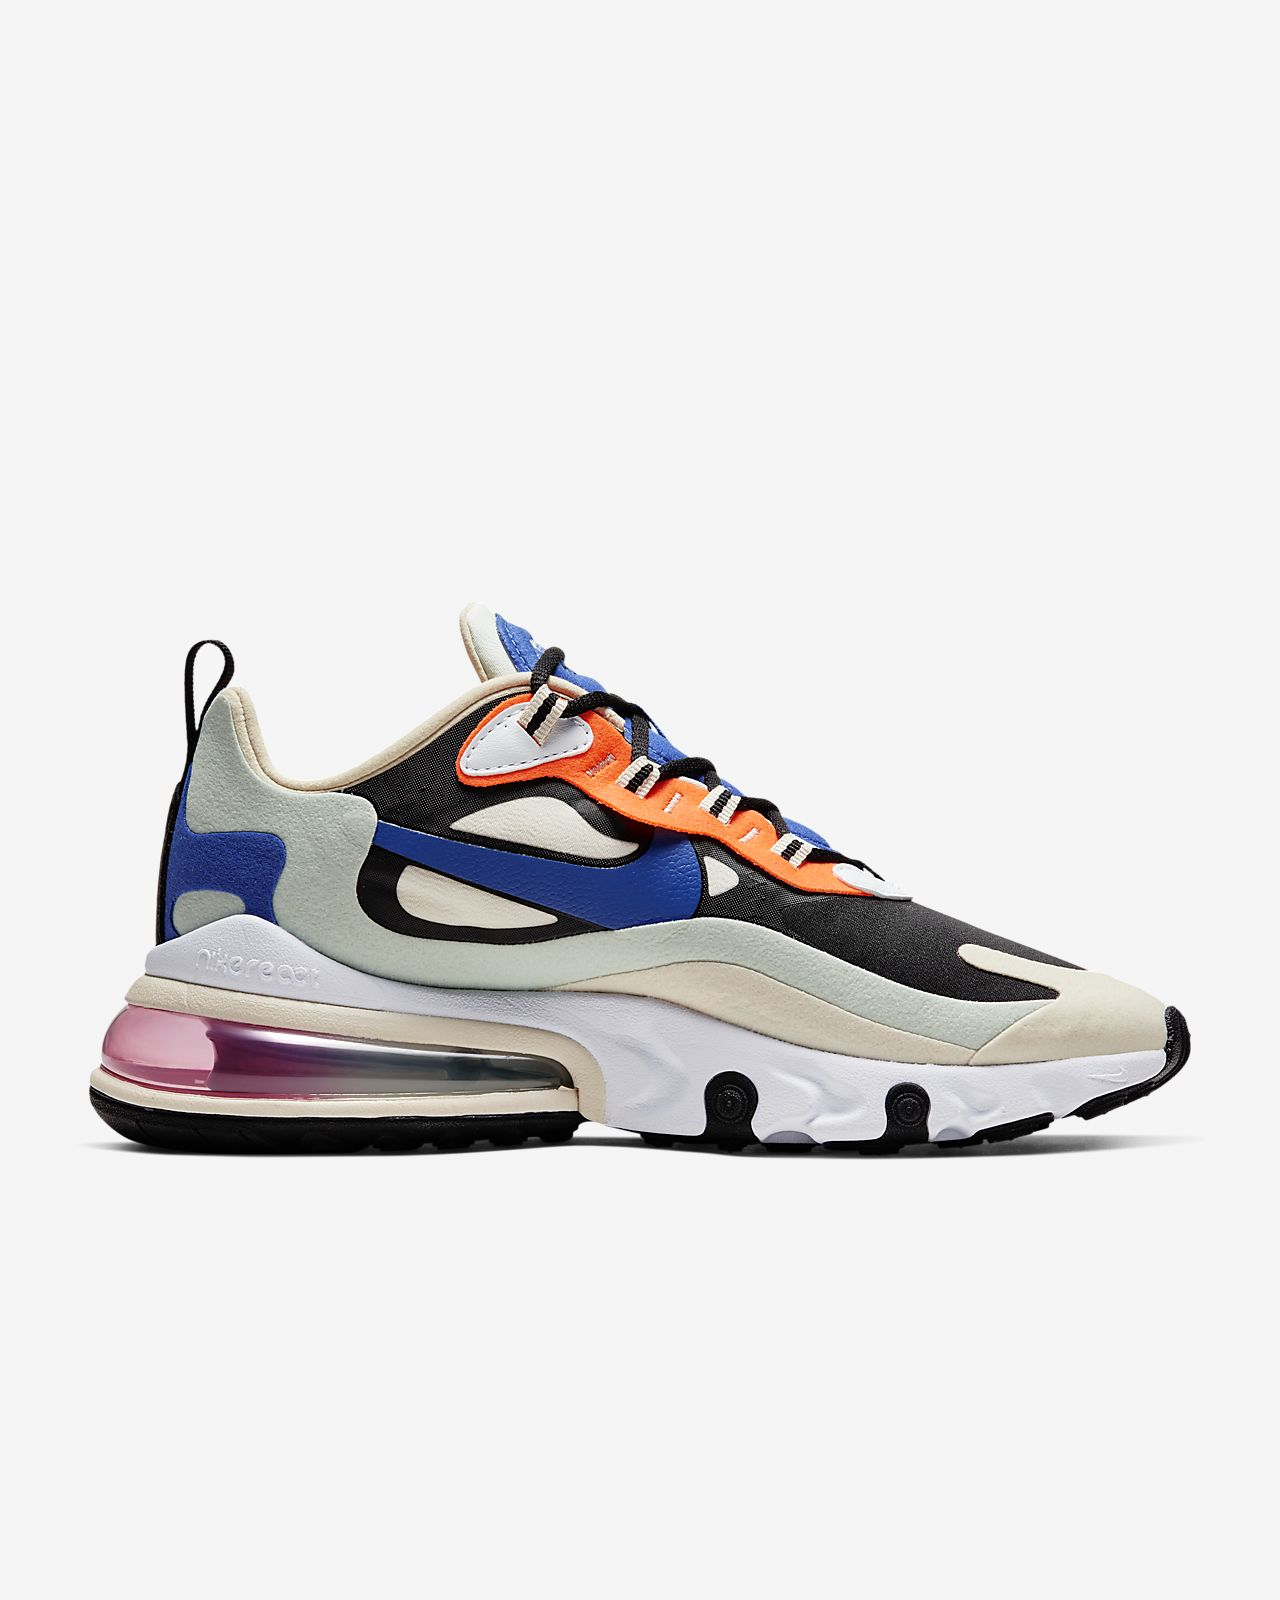 nike air max plus hyper blue shirt